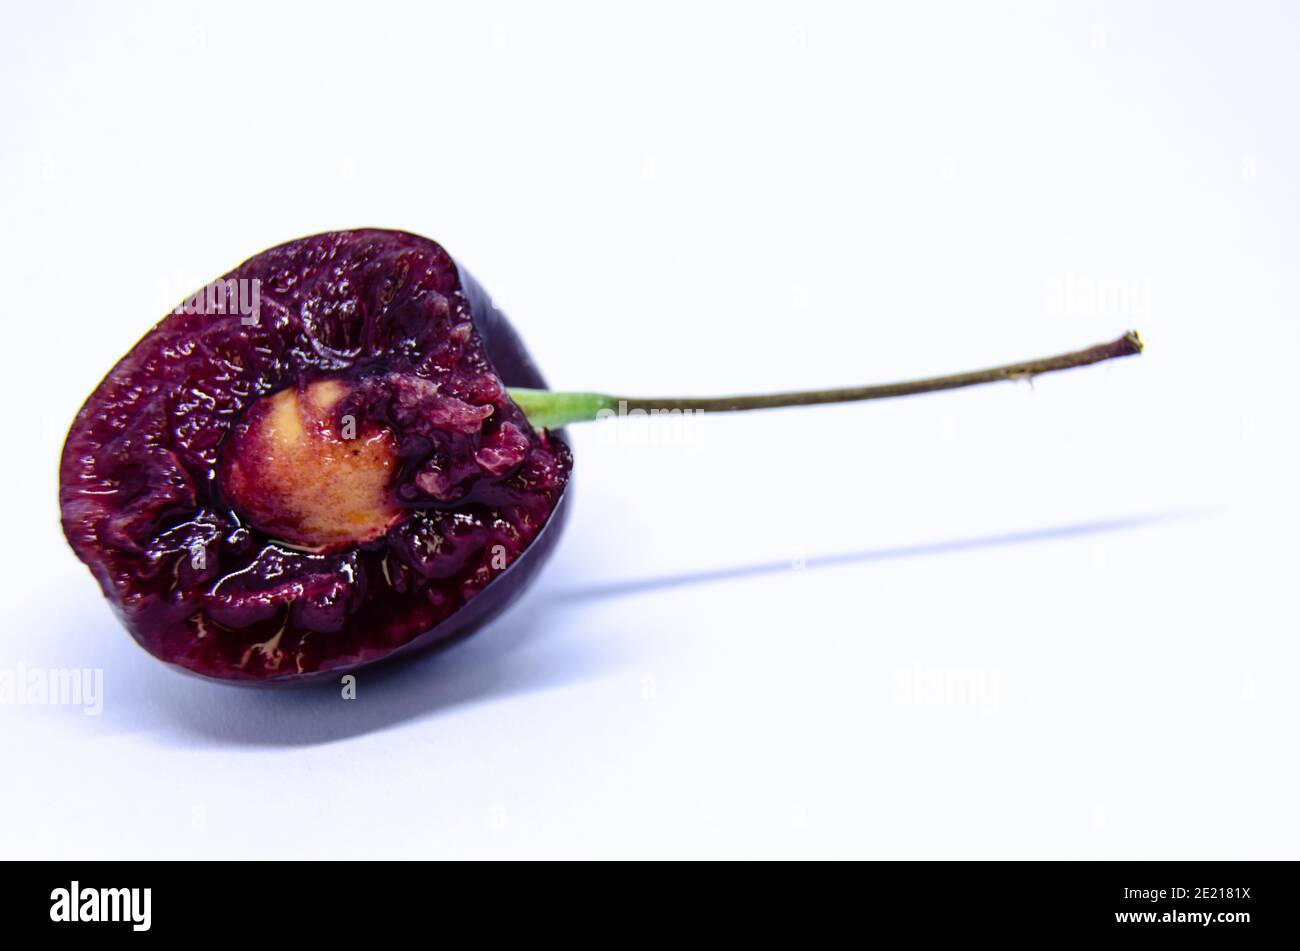 a-single-cherry-with-a-bite-taken-out-of-it-showing-the-seed-and-juicy-flesh-inside-isolated-on-a-white-background-2E2181X.jpg